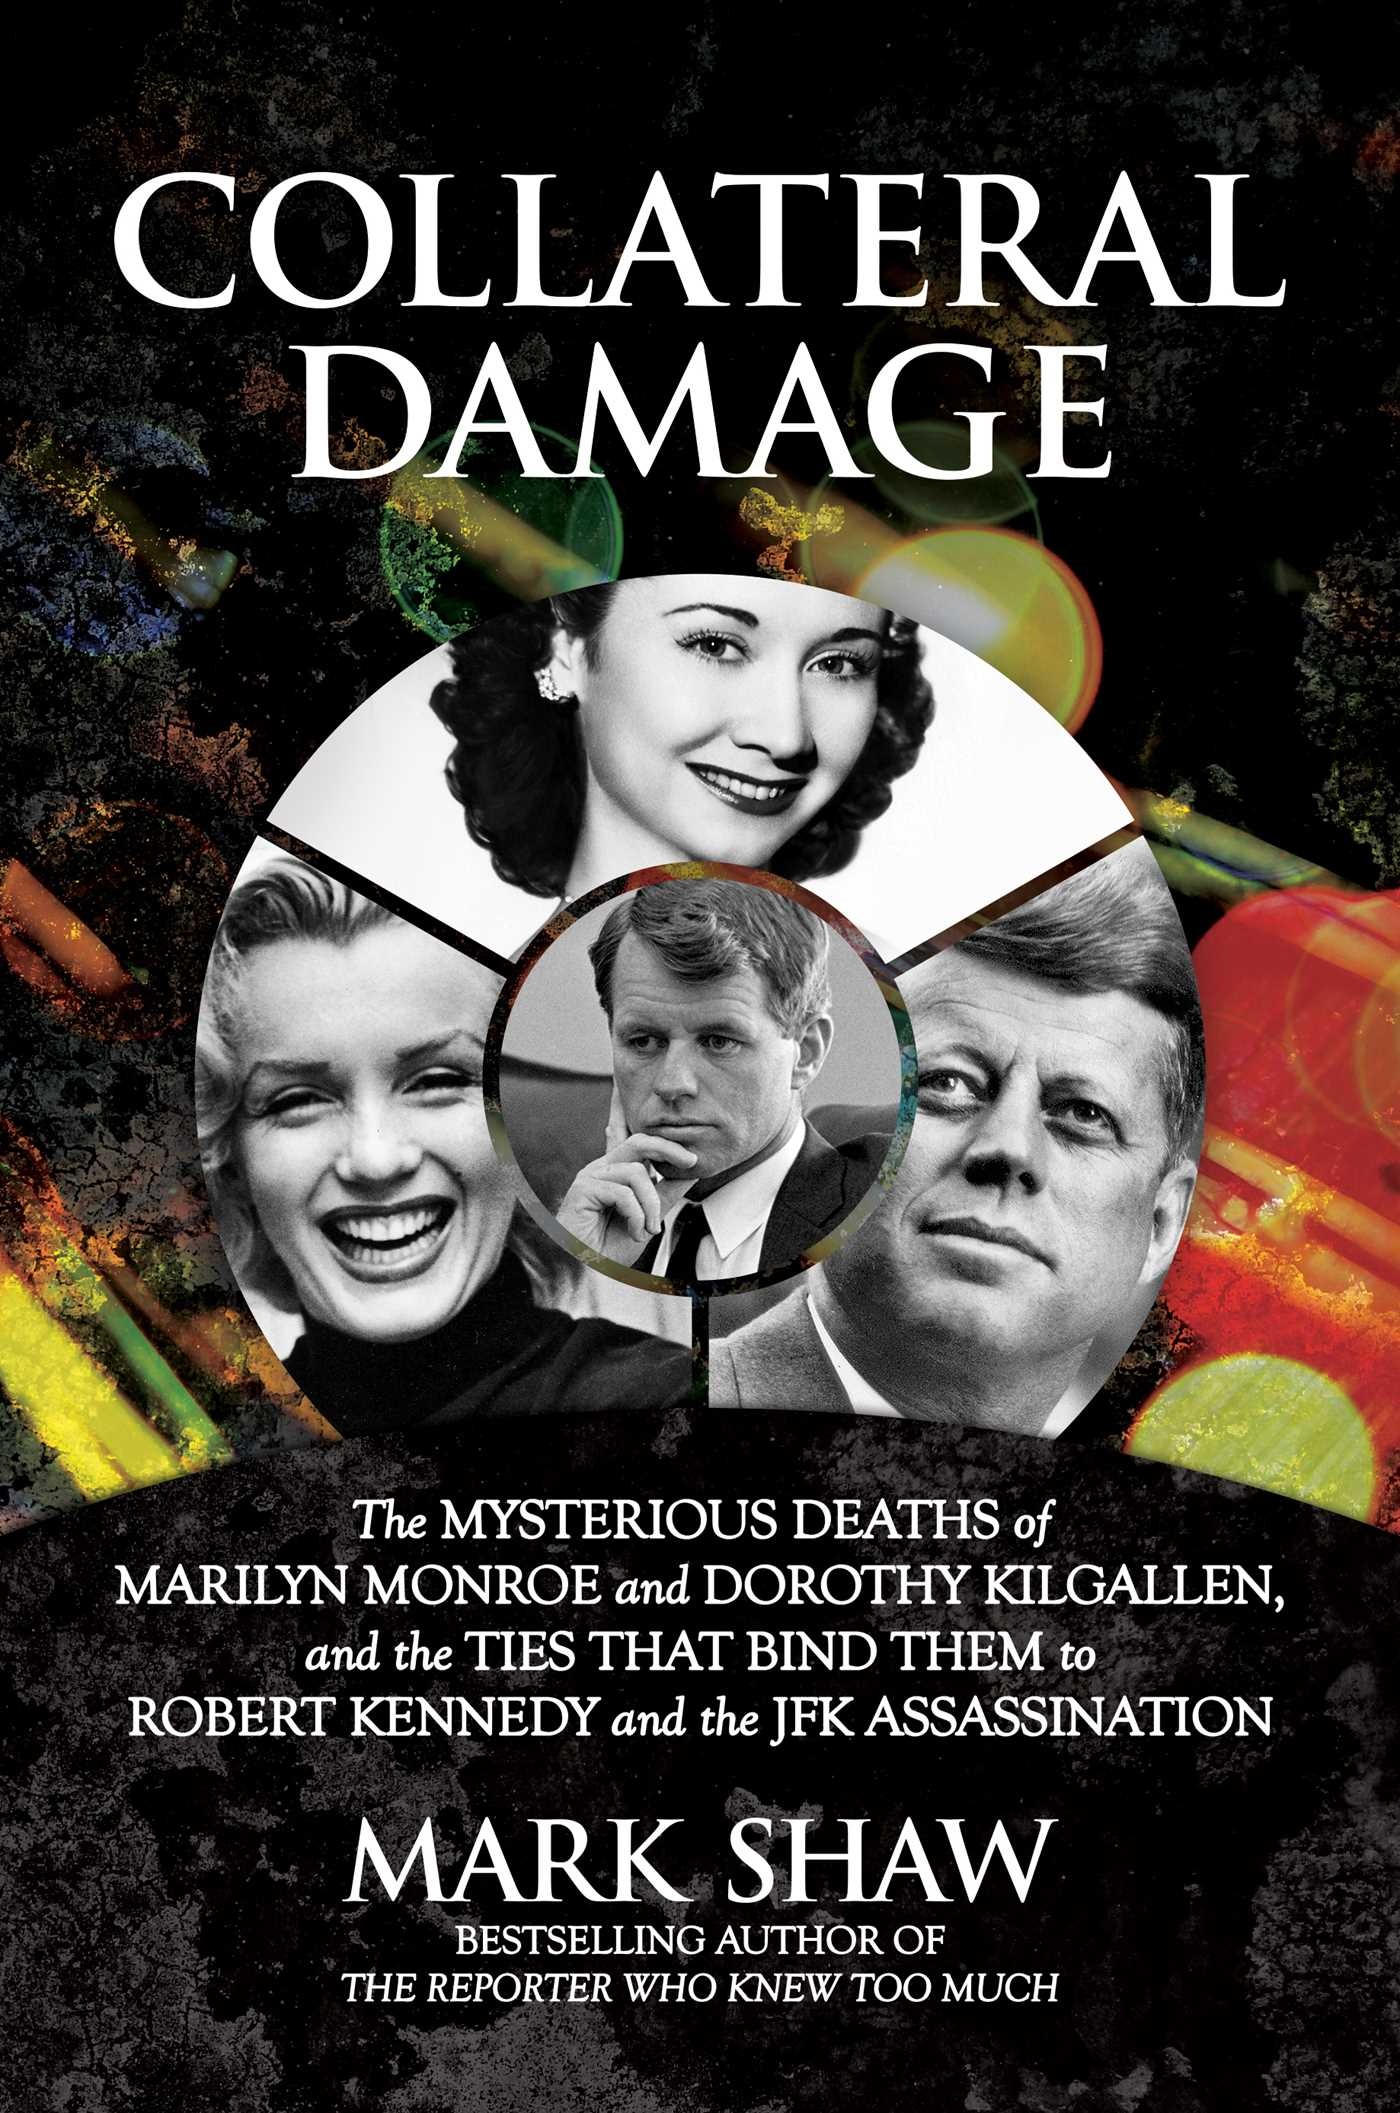 Collateral Damage: The Mysterious Deaths of Marilyn Monroe and Dorothy Kilgallen, and the Ties that Bind Them to Robert Kennedy and the JFK Assassination